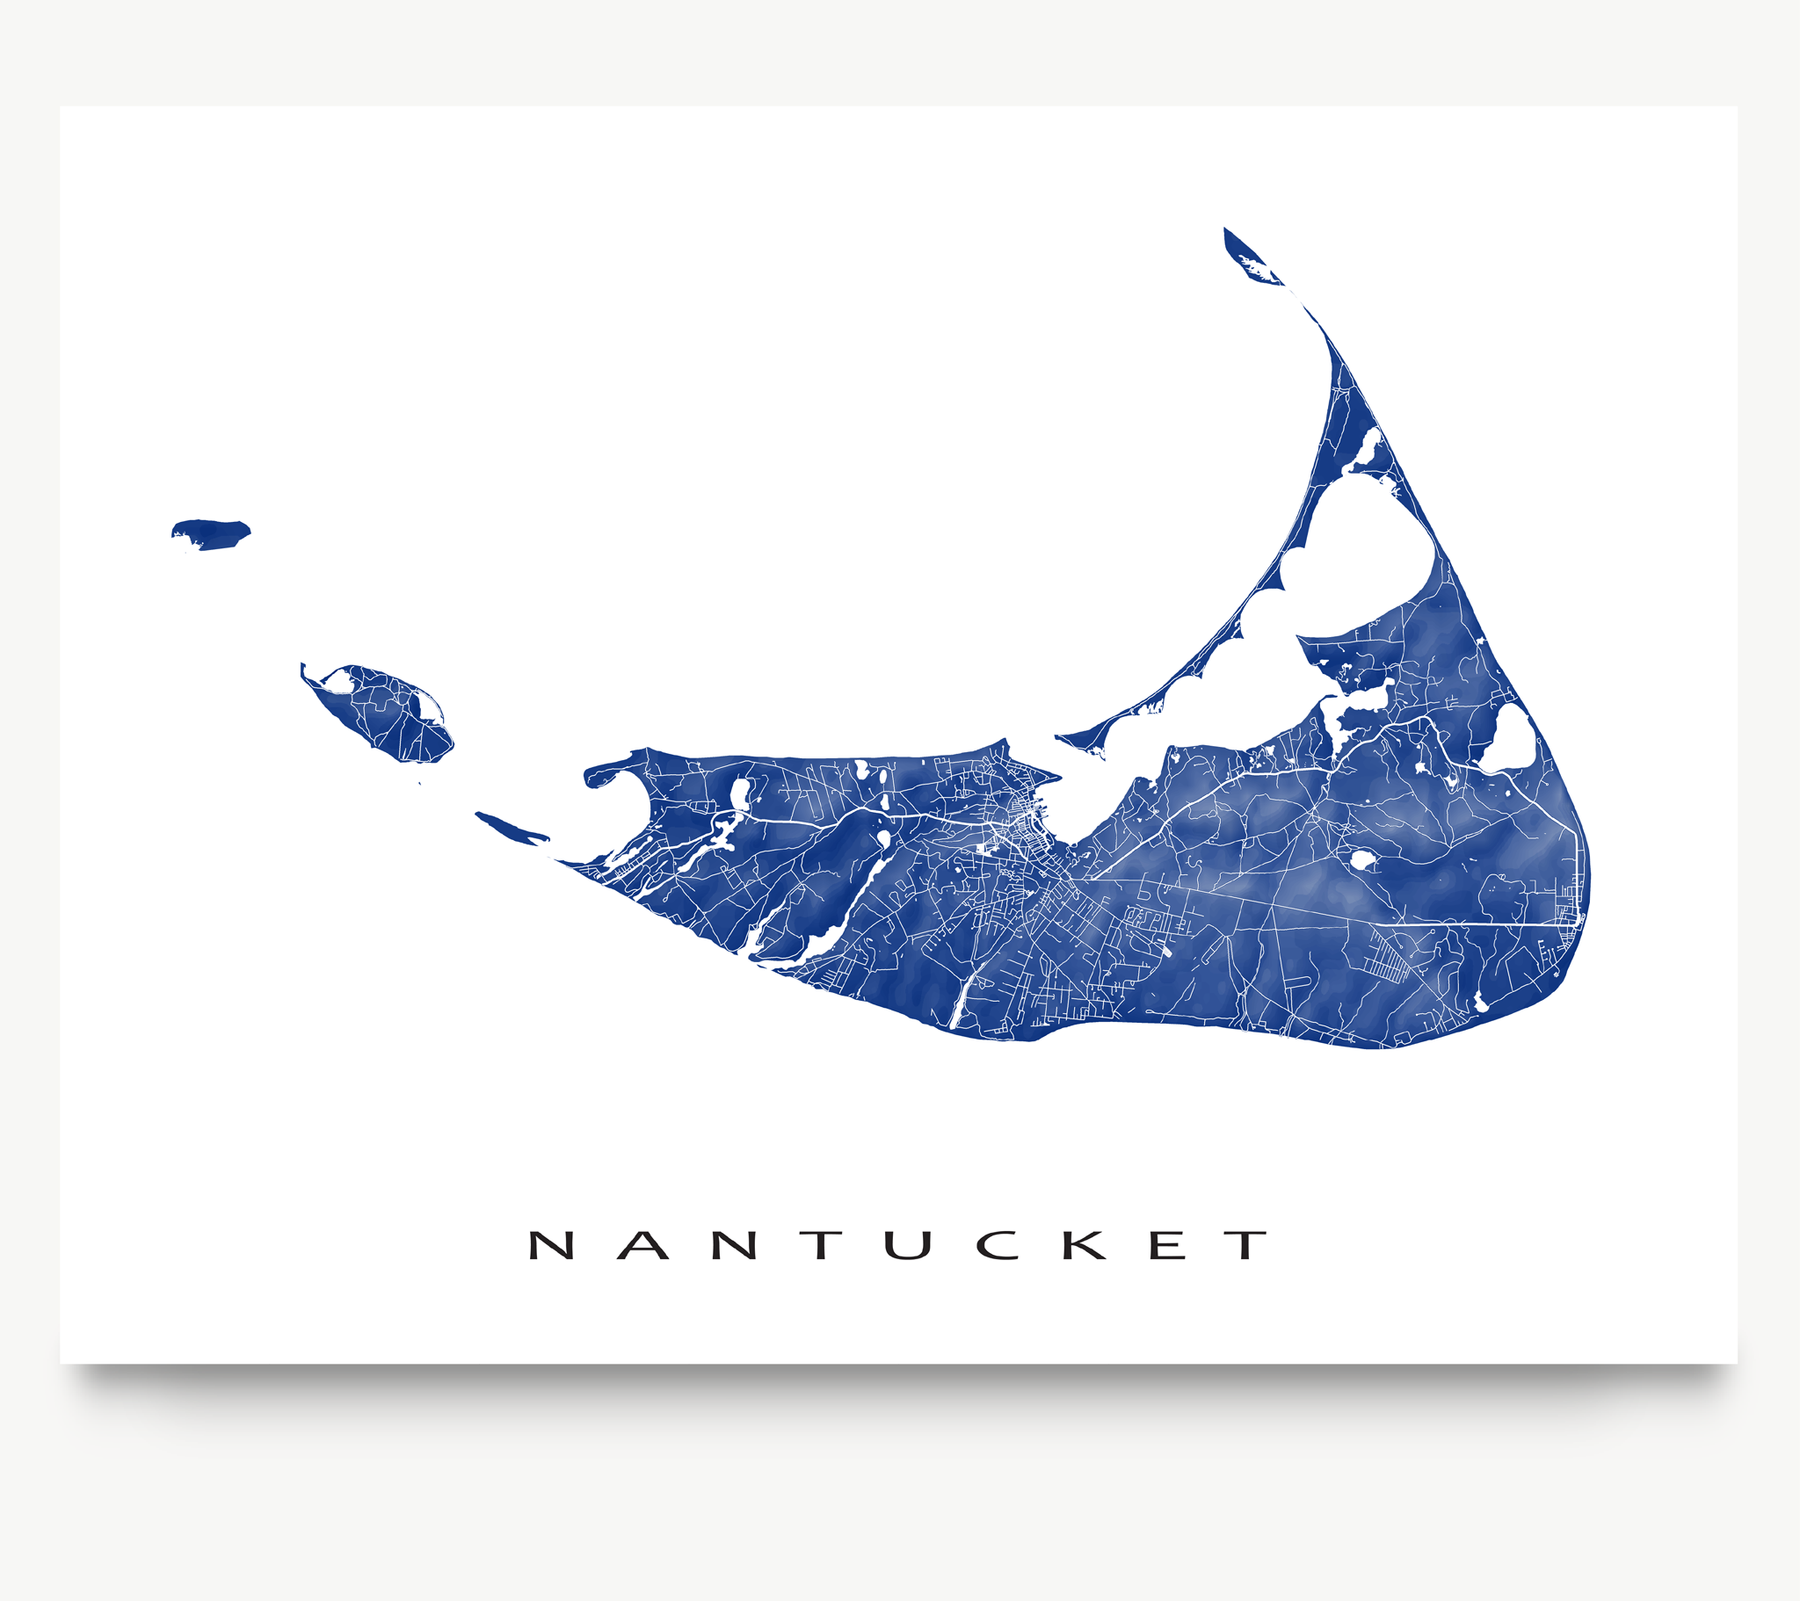 Nantucket island, Massachusetts map print with natural landscape and main roads in Navy designed by Maps As Art.